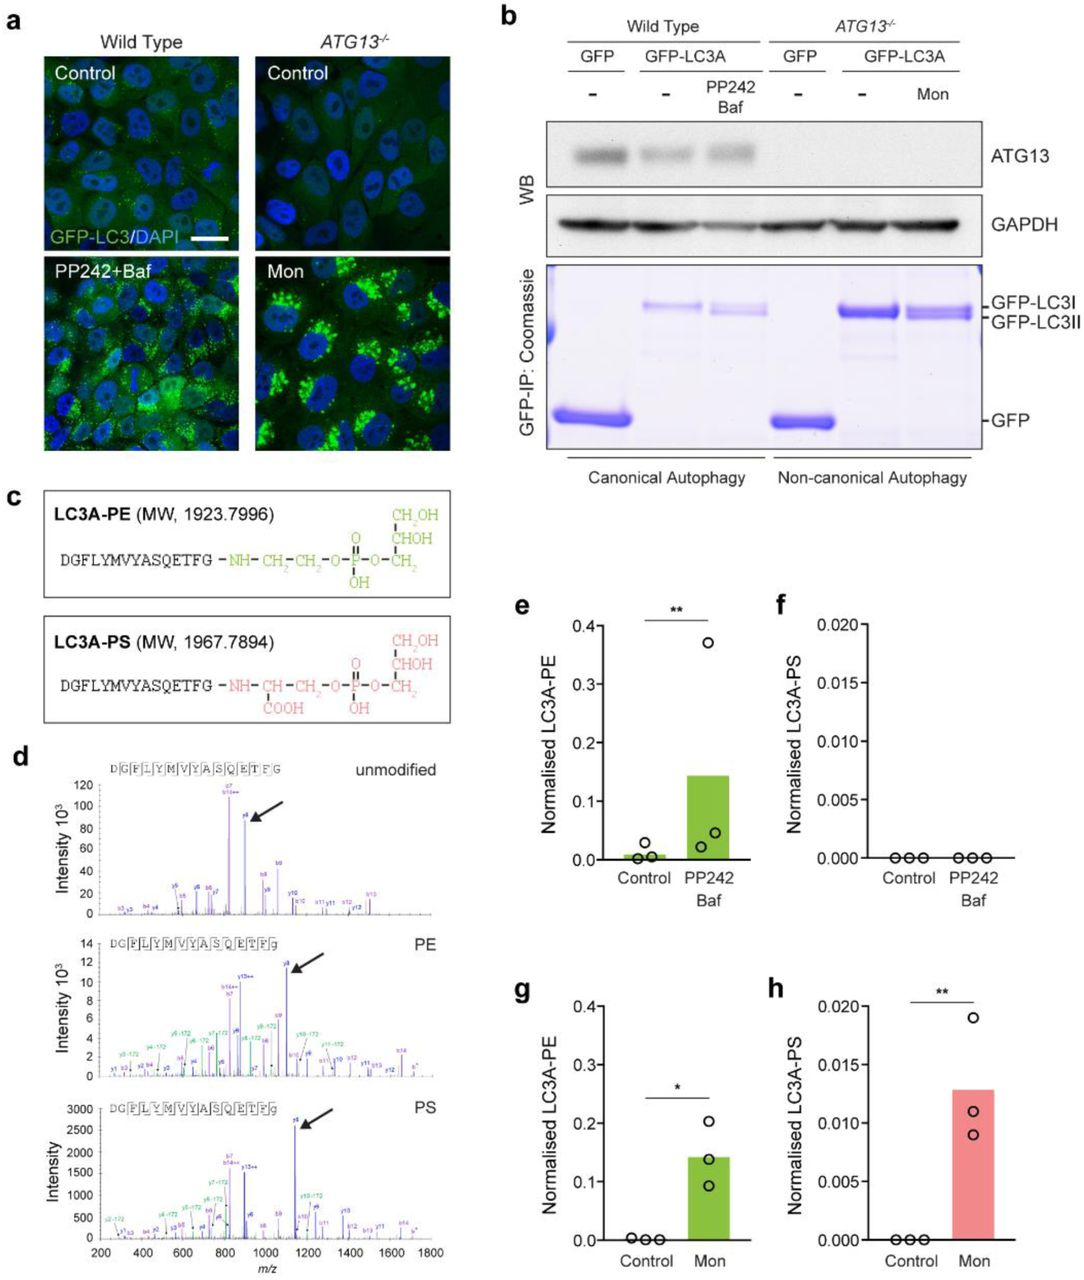 Pharmacological activation of non-canonical autophagy promotes ATG8-PS lipidation in cells. Wild type MCF10A GFP-LC3A cells were treated with 1 μM PP242/100 nM BafA1 for 60 mins. ATG13 -/- cells were treated with 100 μM monensin (Mon) for 40mins. a , Confocal images of GFP-LC3A and DAPI. Scale bar: 20 μm. b , Western blotting for ATG13 or GAPDH, GFP-IPs were visualised by Coomassie staining. c , C-terminal peptides of LC3A conjugated to either the PE or PS headgroup. Predicted MWs are indicated. d , Representative CID mass spectra of unmodified, PE or PS modified LC3A peptides. y-ions (C-terminal) undergo monoisotopic mass shift upon modification: 197.05, glycerophosphoethanolamine (from PE); 241.04, glycerophosphoserine (from PS); y8 peaks are highlighted (arrow heads) as examples. Some y-ions give a secondary fragment consistent with neutral loss of phosphoglycerol (172). As expected, b-ions (N-terminal) do not shift. b14 is characteristically absent from the unmodified peptide, but can be observed in the modified peptides, along with b* (cleavage between Gly and the head group), confirming the C-terminal amide linked modification. e-h , Normalized mass spectrometry analysis of LC3-PE and LC3A-PS in WT e, f , and ATG13 -/- g, h , cells. Data represent means from 3 independent experiments, **p